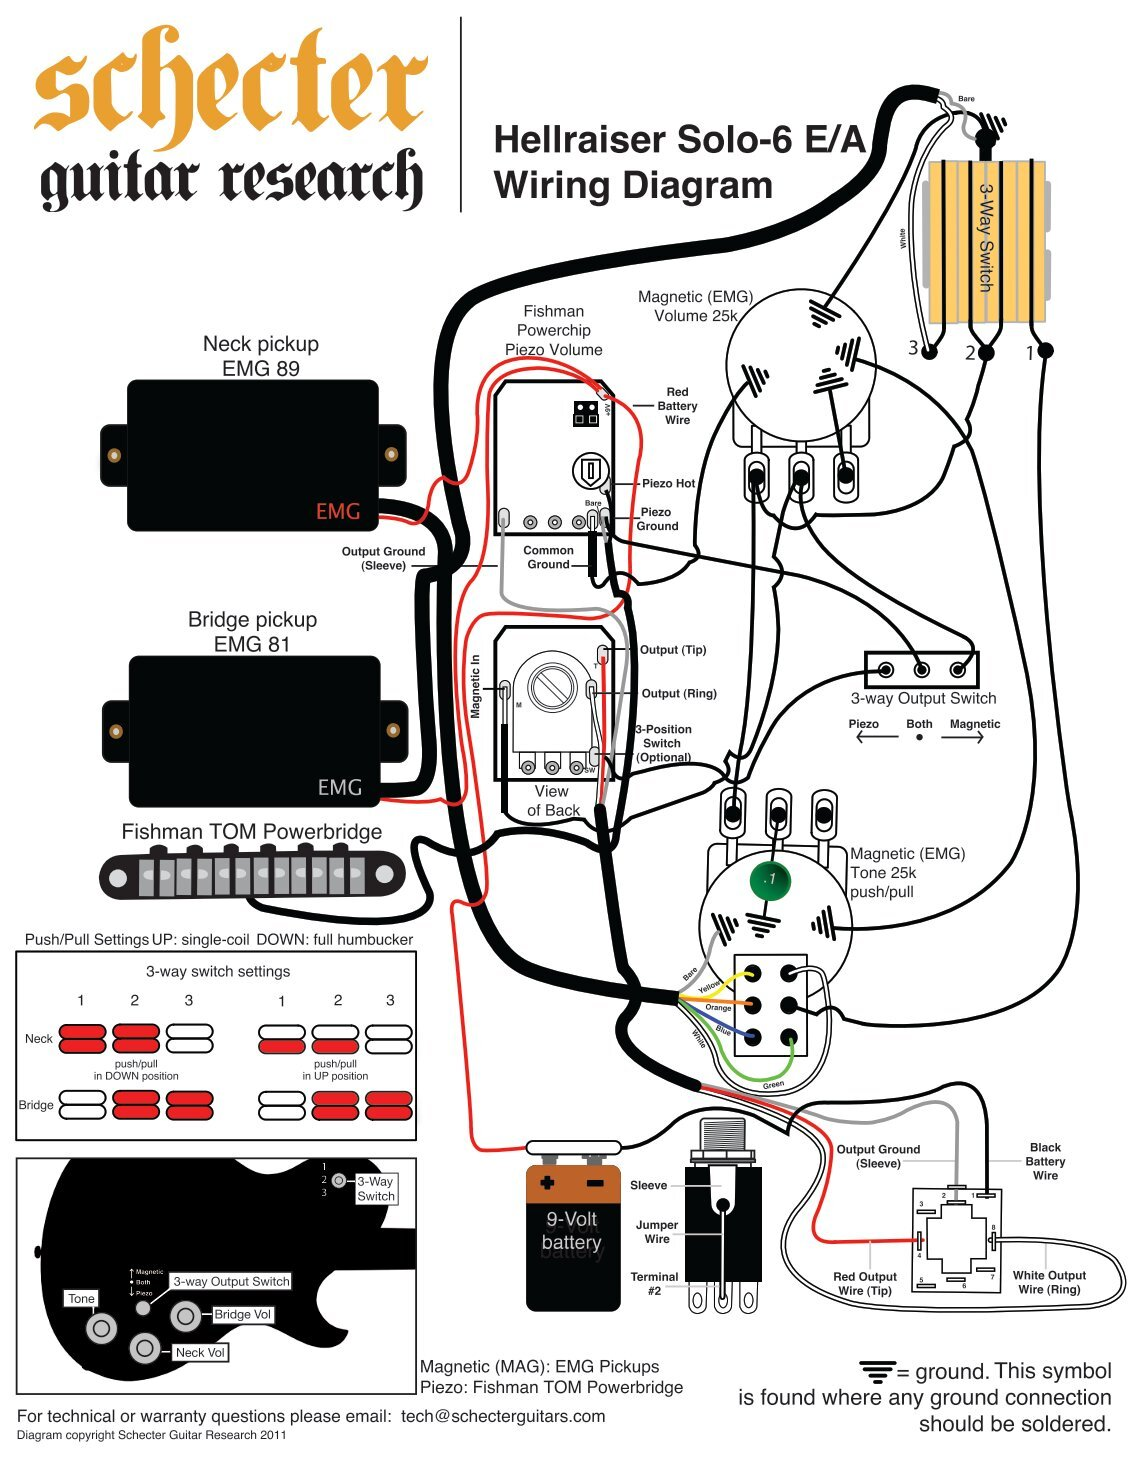 Wiring Diagram Prs Dragon 2 Diagrams Push Pull A Kill Switch On Guitar Free Ii 29 Images Schematics